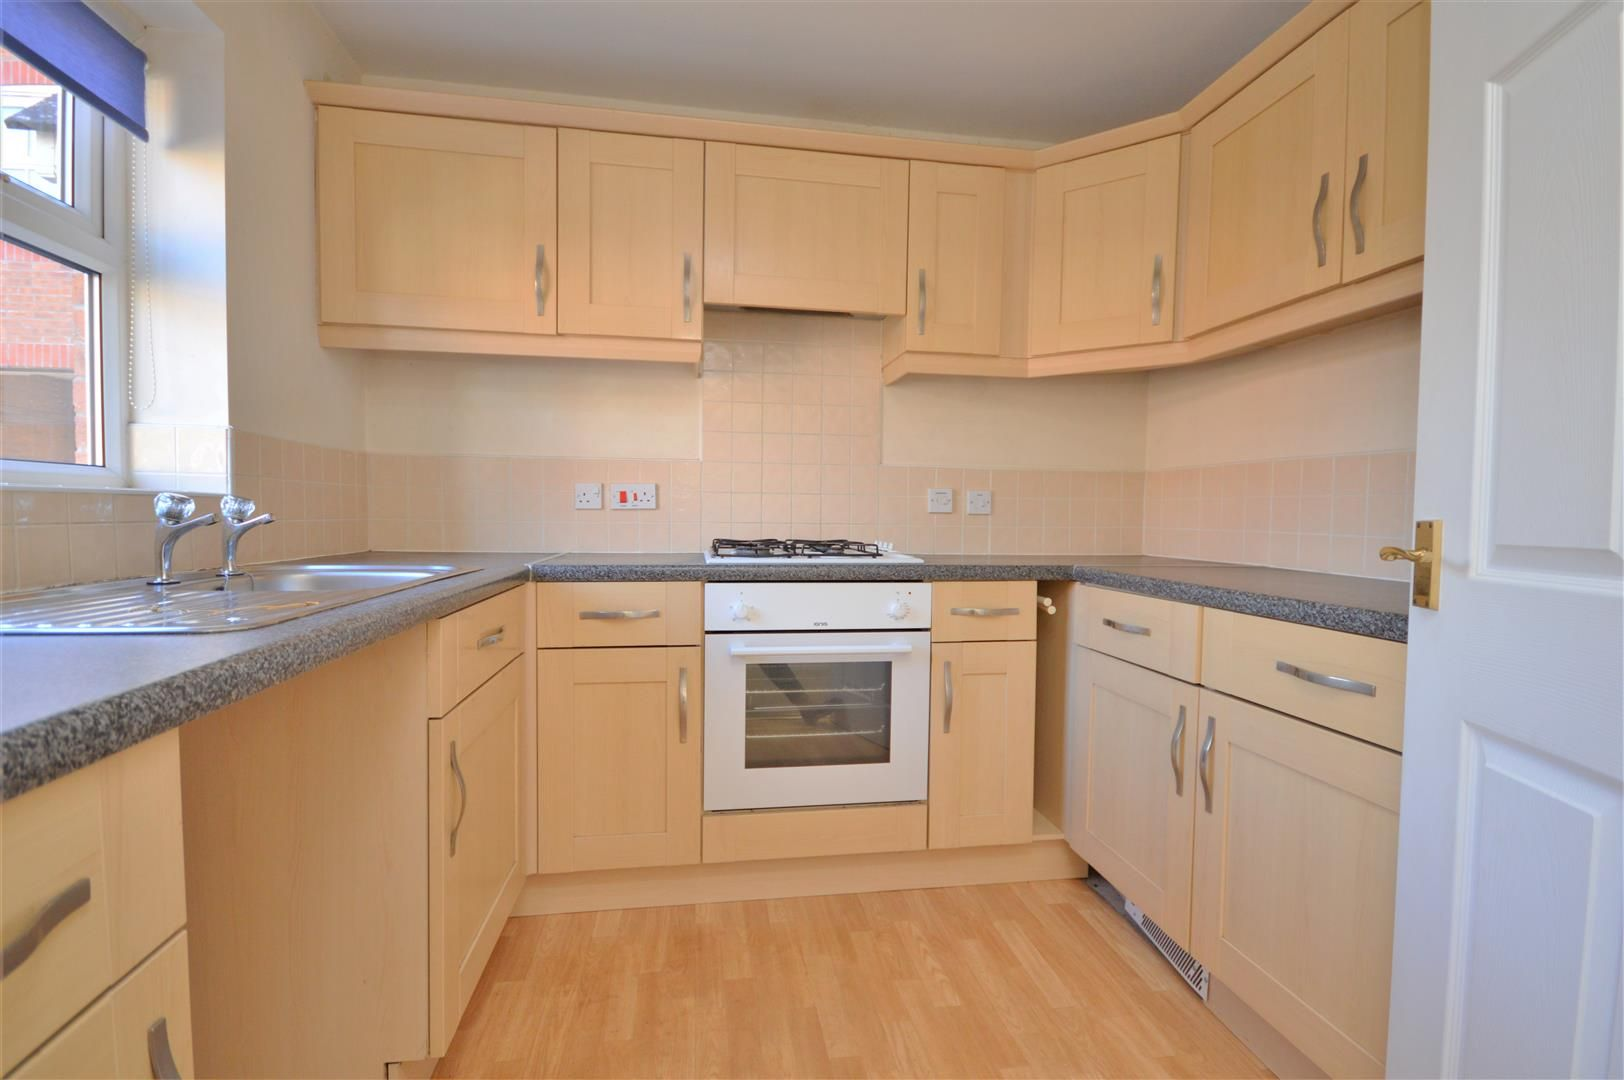 2 bed end-of-terrace for sale 5